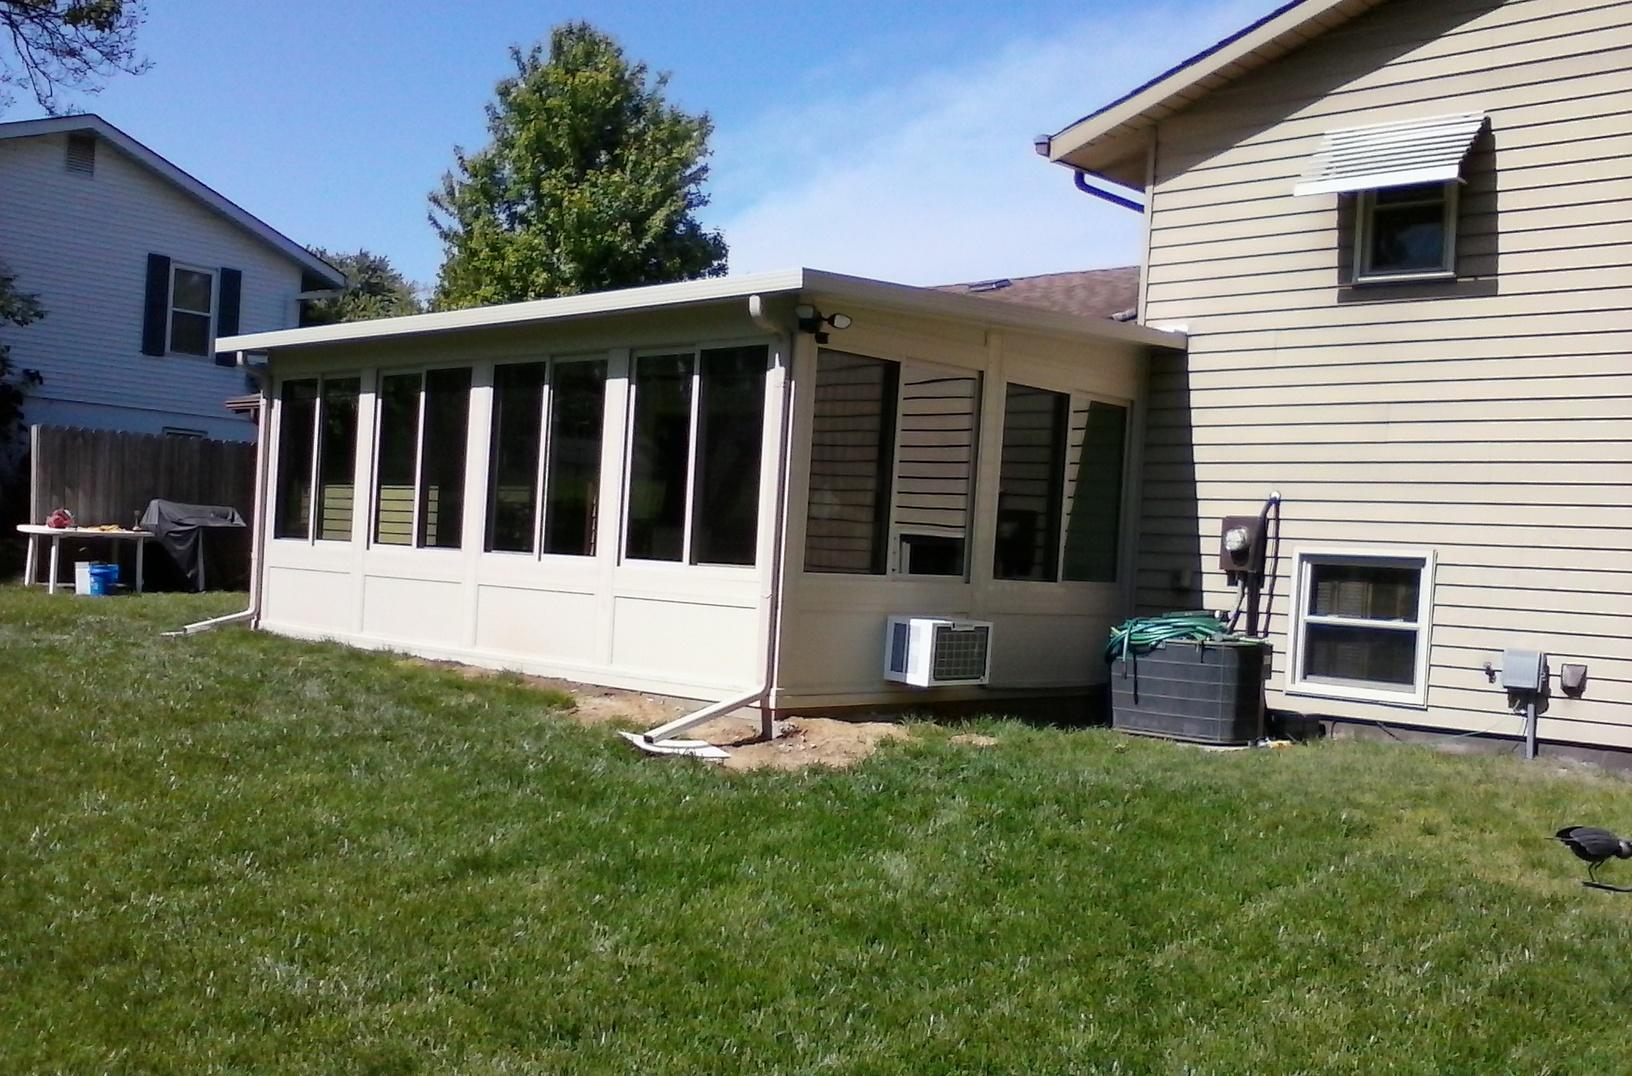 St Peters, MO Sunroom Constructed - After Photo